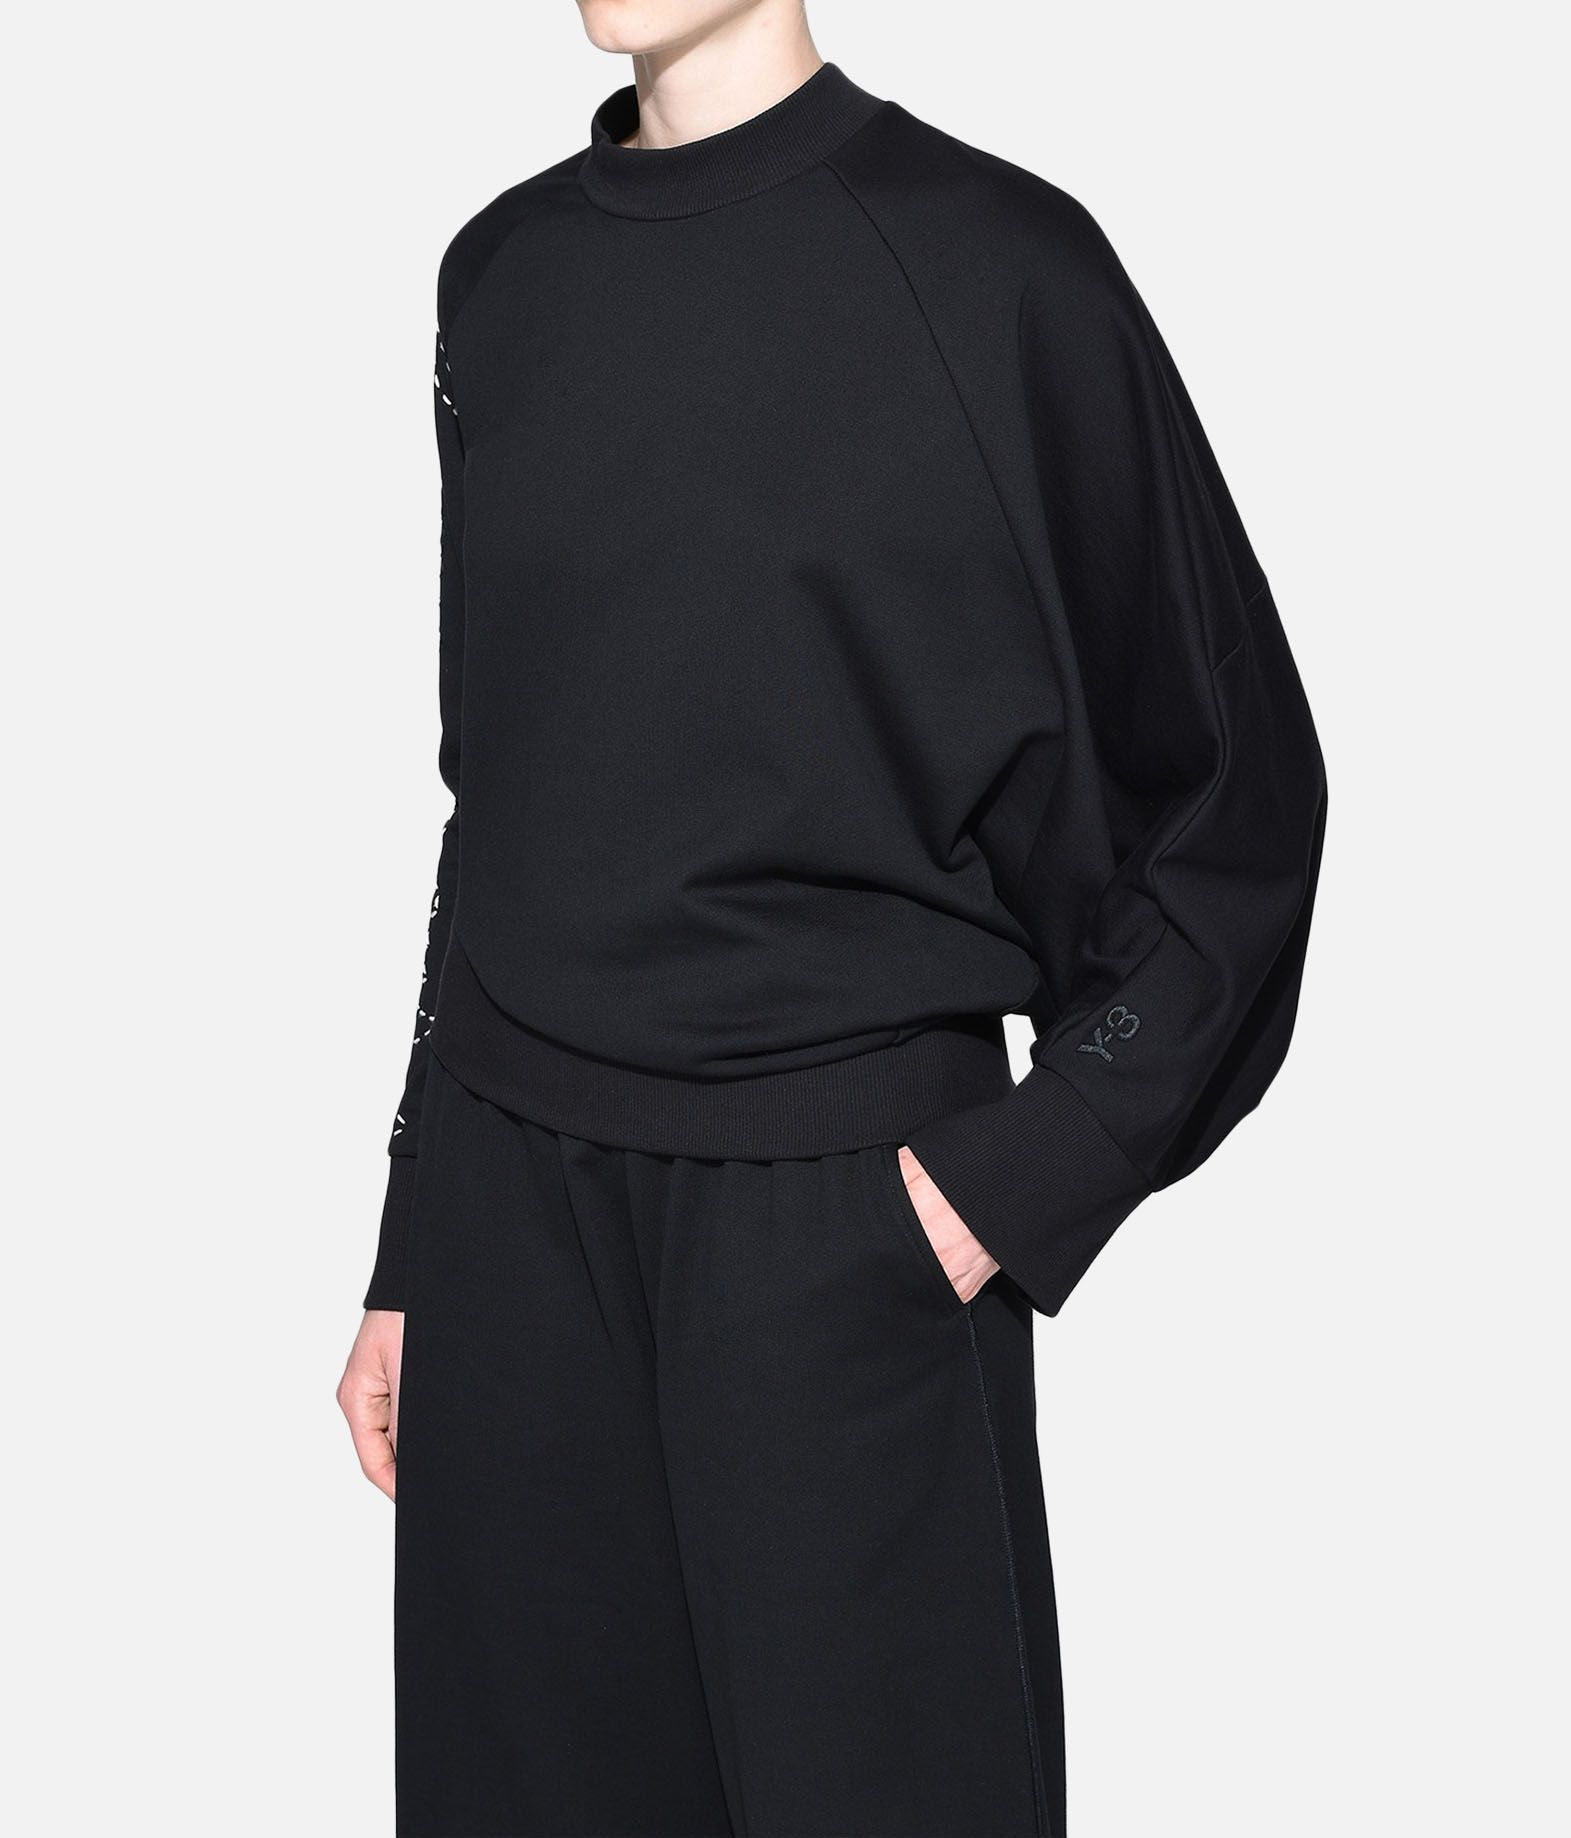 Y-3 Y-3 Sashiko Slogan Sweater Sweatshirt Woman e